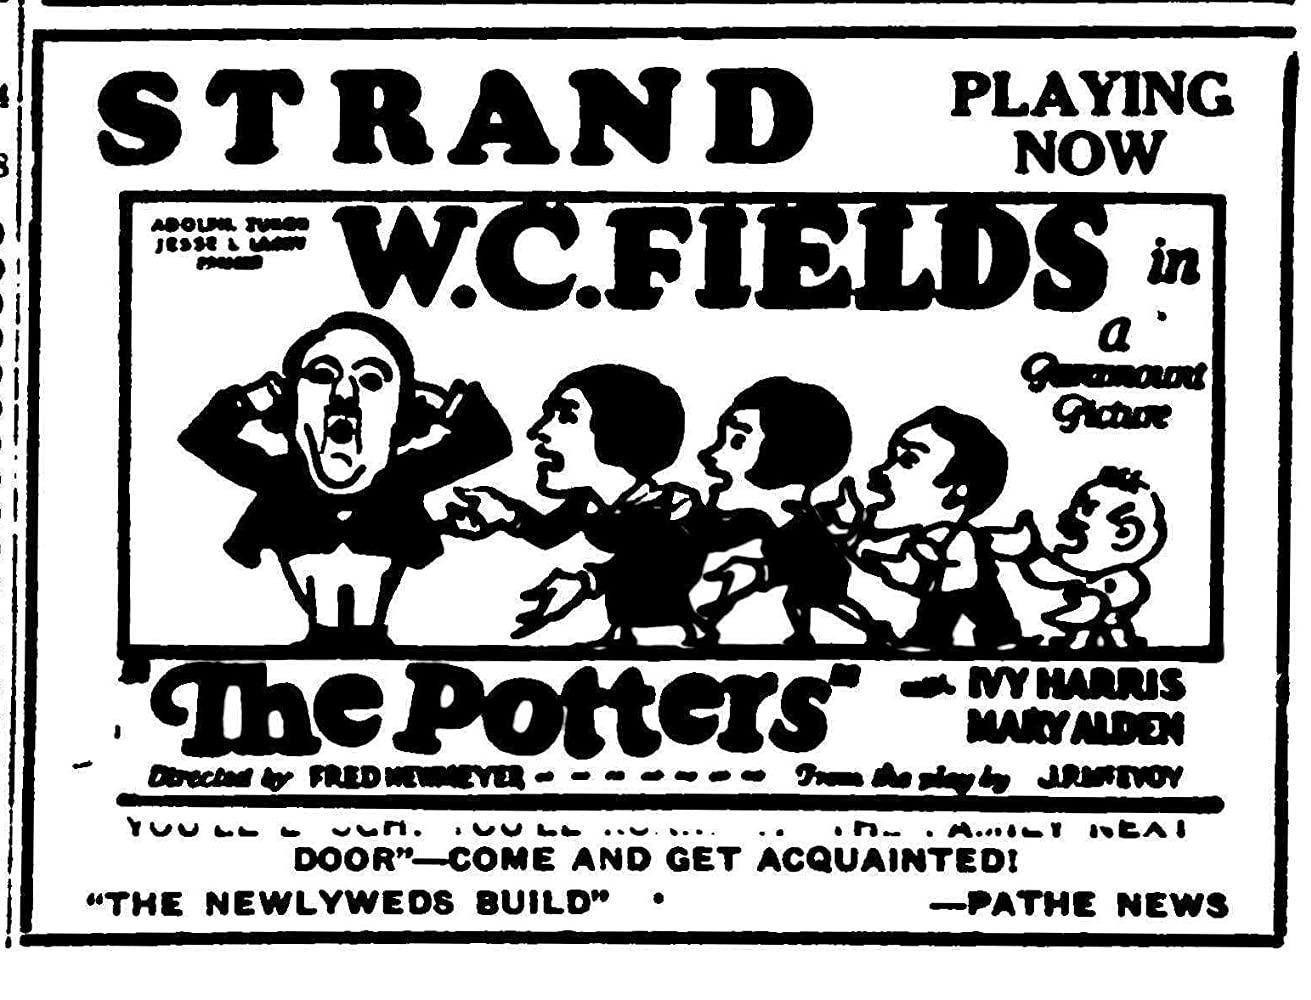 The Potters (1927)